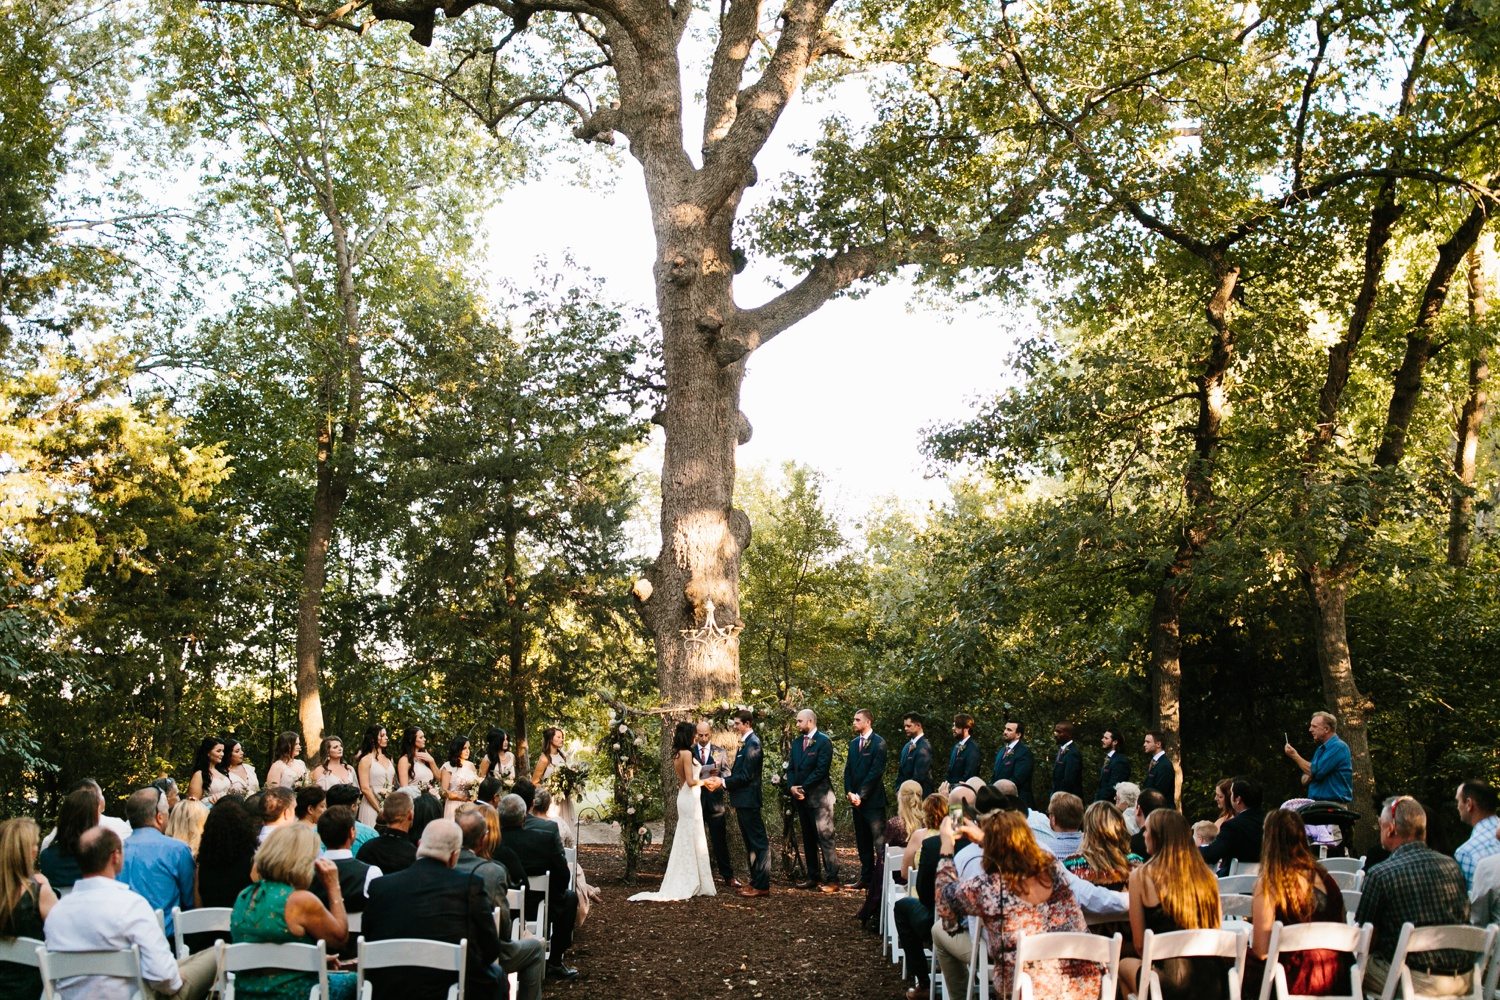 Erica + Henry | a bohemian inspired wedding at Chandlers Gardens in Salina, TX by North Texas Wedding Photographer Rachel Meagan Photography 077